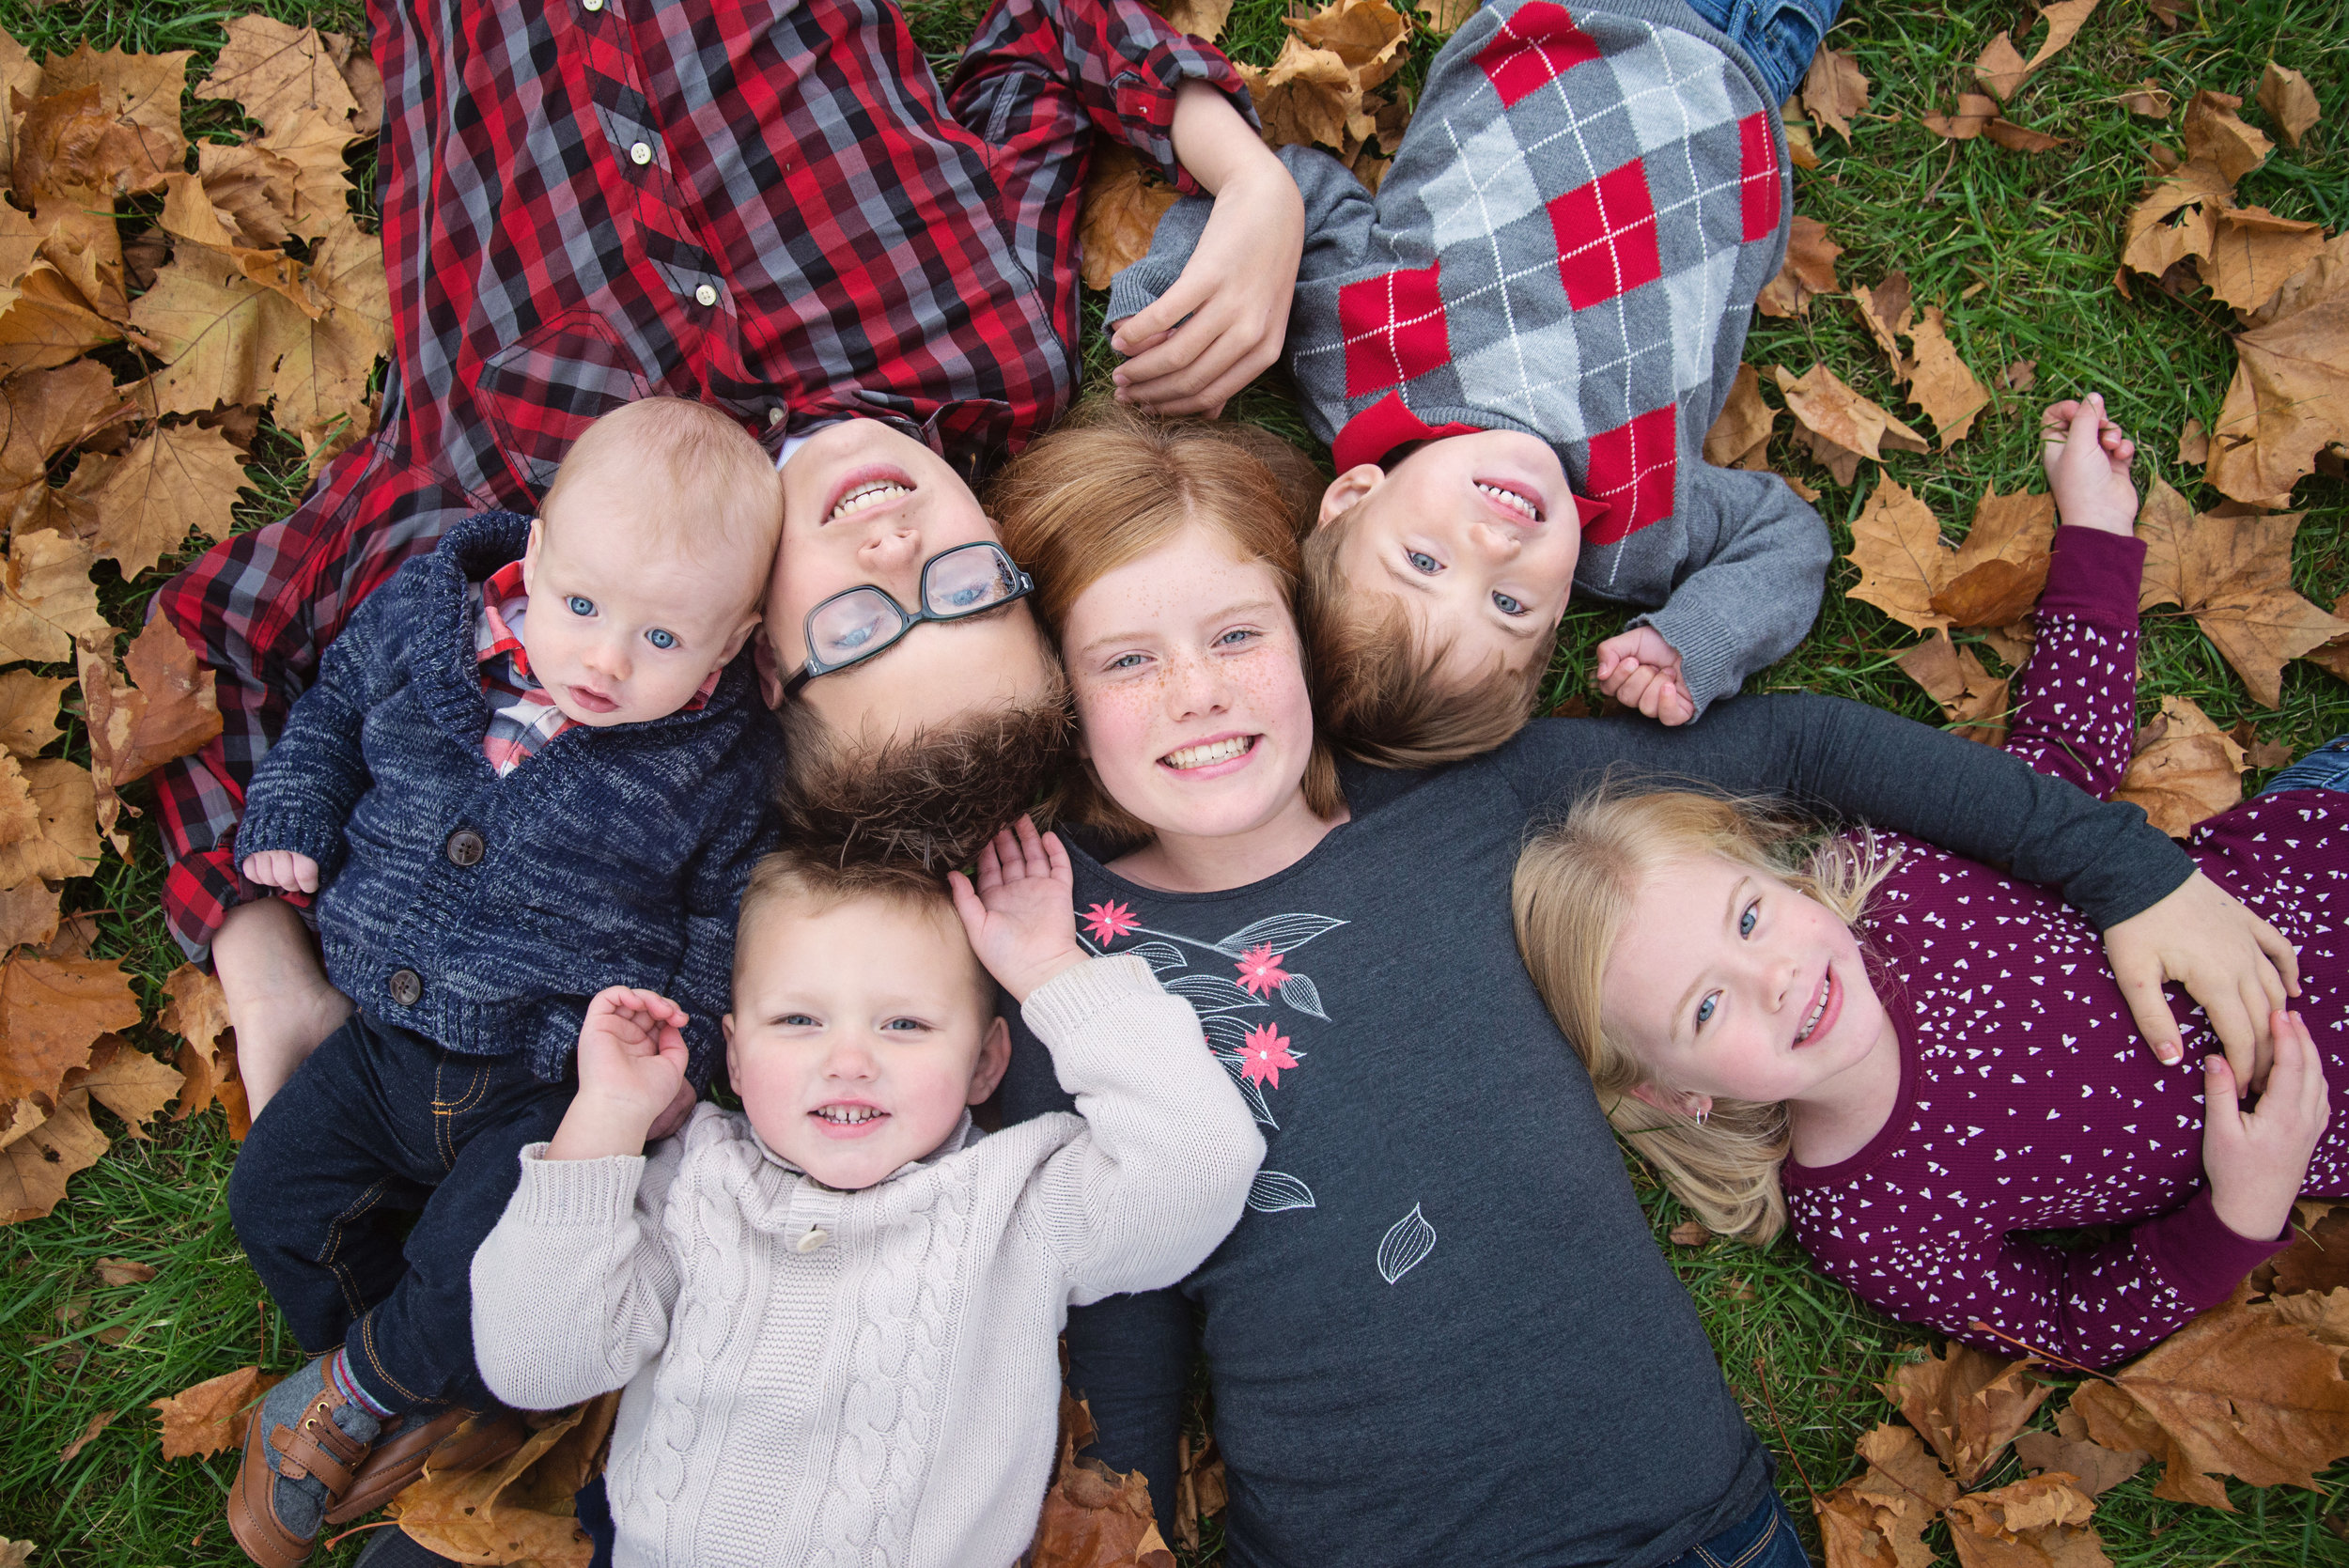 st-louis-family-photographer-six-kids-laying-in-leaves-looking-up-with-heads-together.jpg